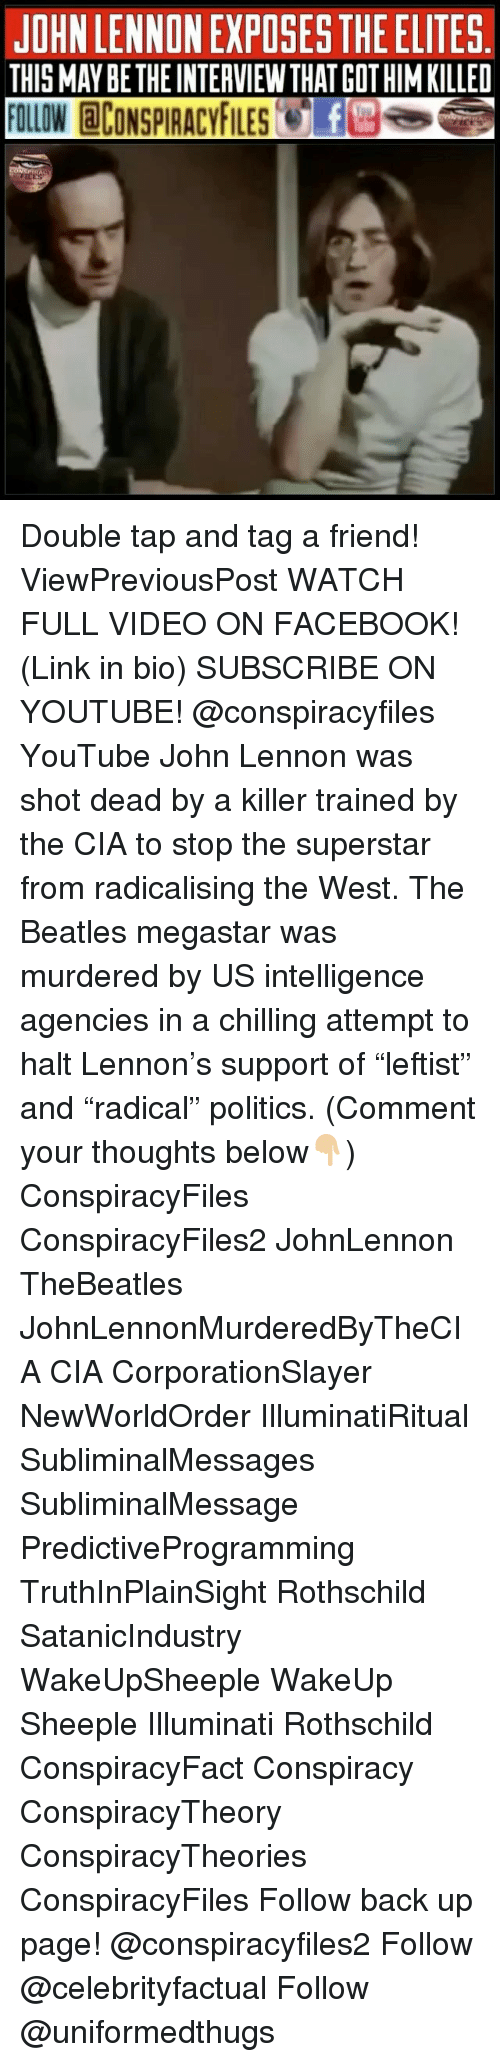 """Facebook, Illuminati, and John Lennon: JOHN LENNON EXPOSES THE ELITES.  THIS MAY BETHE INTERVIEWTHAT GOT HIM KILLED  FOLLOW @CONSPIRACYFILES'e.E3 Double tap and tag a friend! ViewPreviousPost WATCH FULL VIDEO ON FACEBOOK! (Link in bio) SUBSCRIBE ON YOUTUBE! @conspiracyfiles YouTube John Lennon was shot dead by a killer trained by the CIA to stop the superstar from radicalising the West. The Beatles megastar was murdered by US intelligence agencies in a chilling attempt to halt Lennon's support of """"leftist"""" and """"radical"""" politics. (Comment your thoughts below👇🏼) ConspiracyFiles ConspiracyFiles2 JohnLennon TheBeatles JohnLennonMurderedByTheCIA CIA CorporationSlayer NewWorldOrder IlluminatiRitual SubliminalMessages SubliminalMessage PredictiveProgramming TruthInPlainSight Rothschild SatanicIndustry WakeUpSheeple WakeUp Sheeple Illuminati Rothschild ConspiracyFact Conspiracy ConspiracyTheory ConspiracyTheories ConspiracyFiles Follow back up page! @conspiracyfiles2 Follow @celebrityfactual Follow @uniformedthugs"""